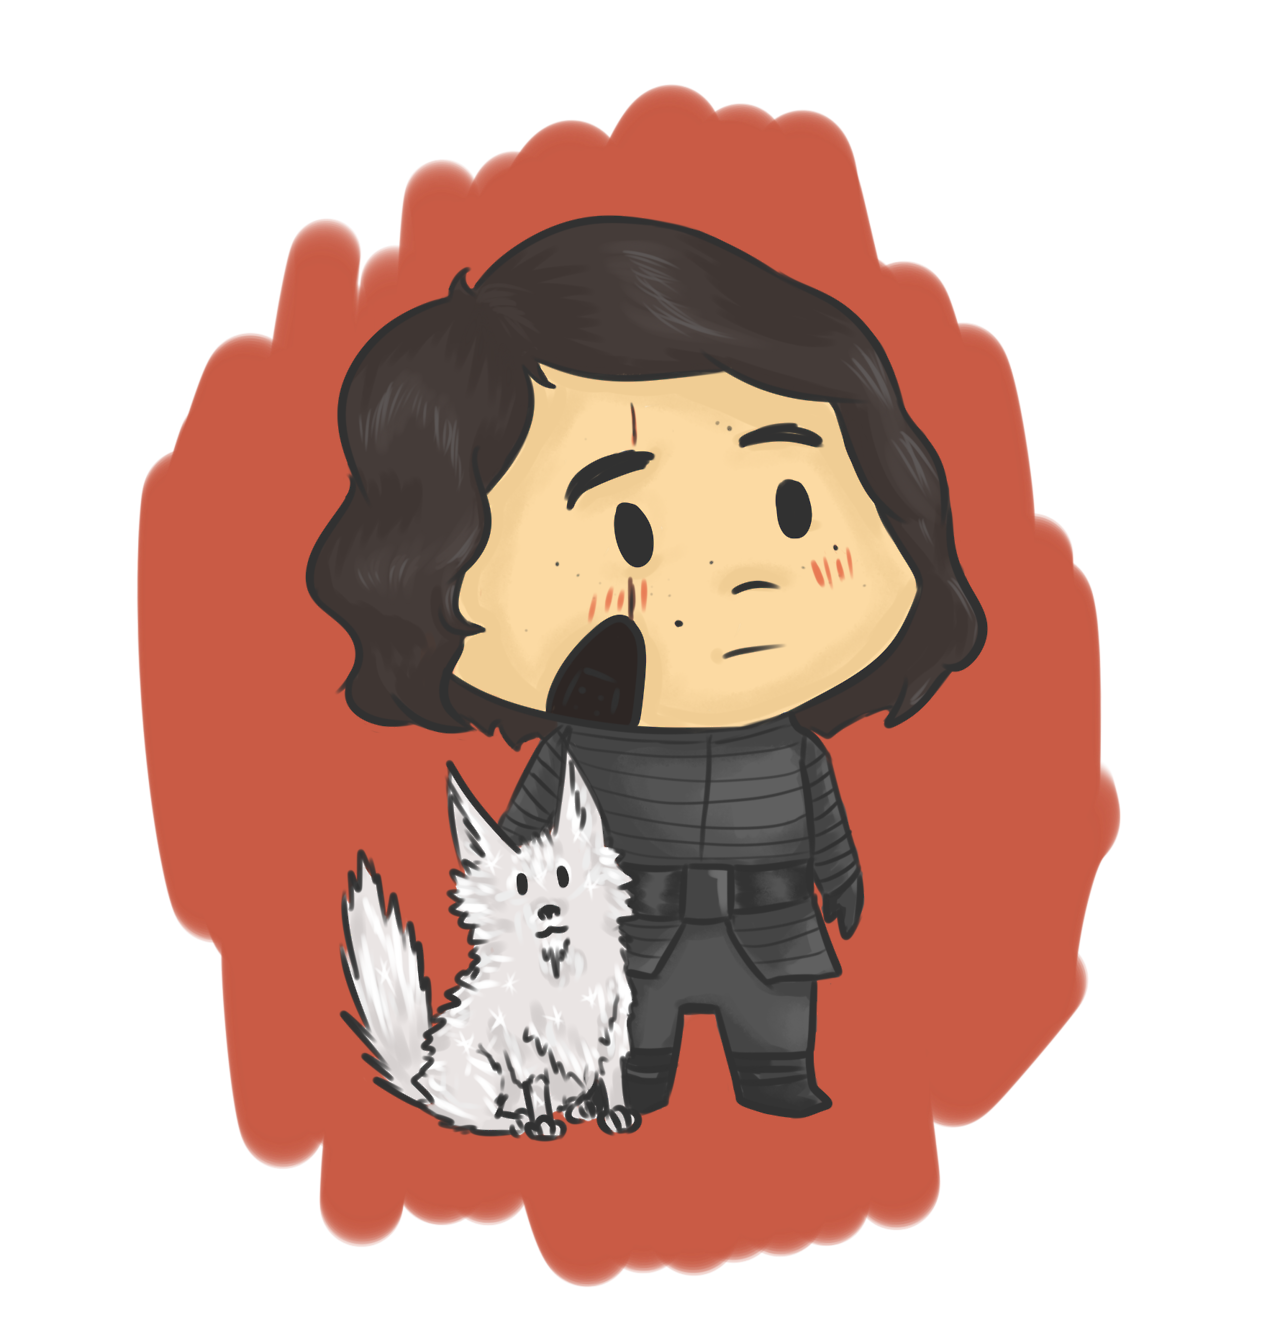 Starwars clipart kylo ren. Shamelessly draws with all